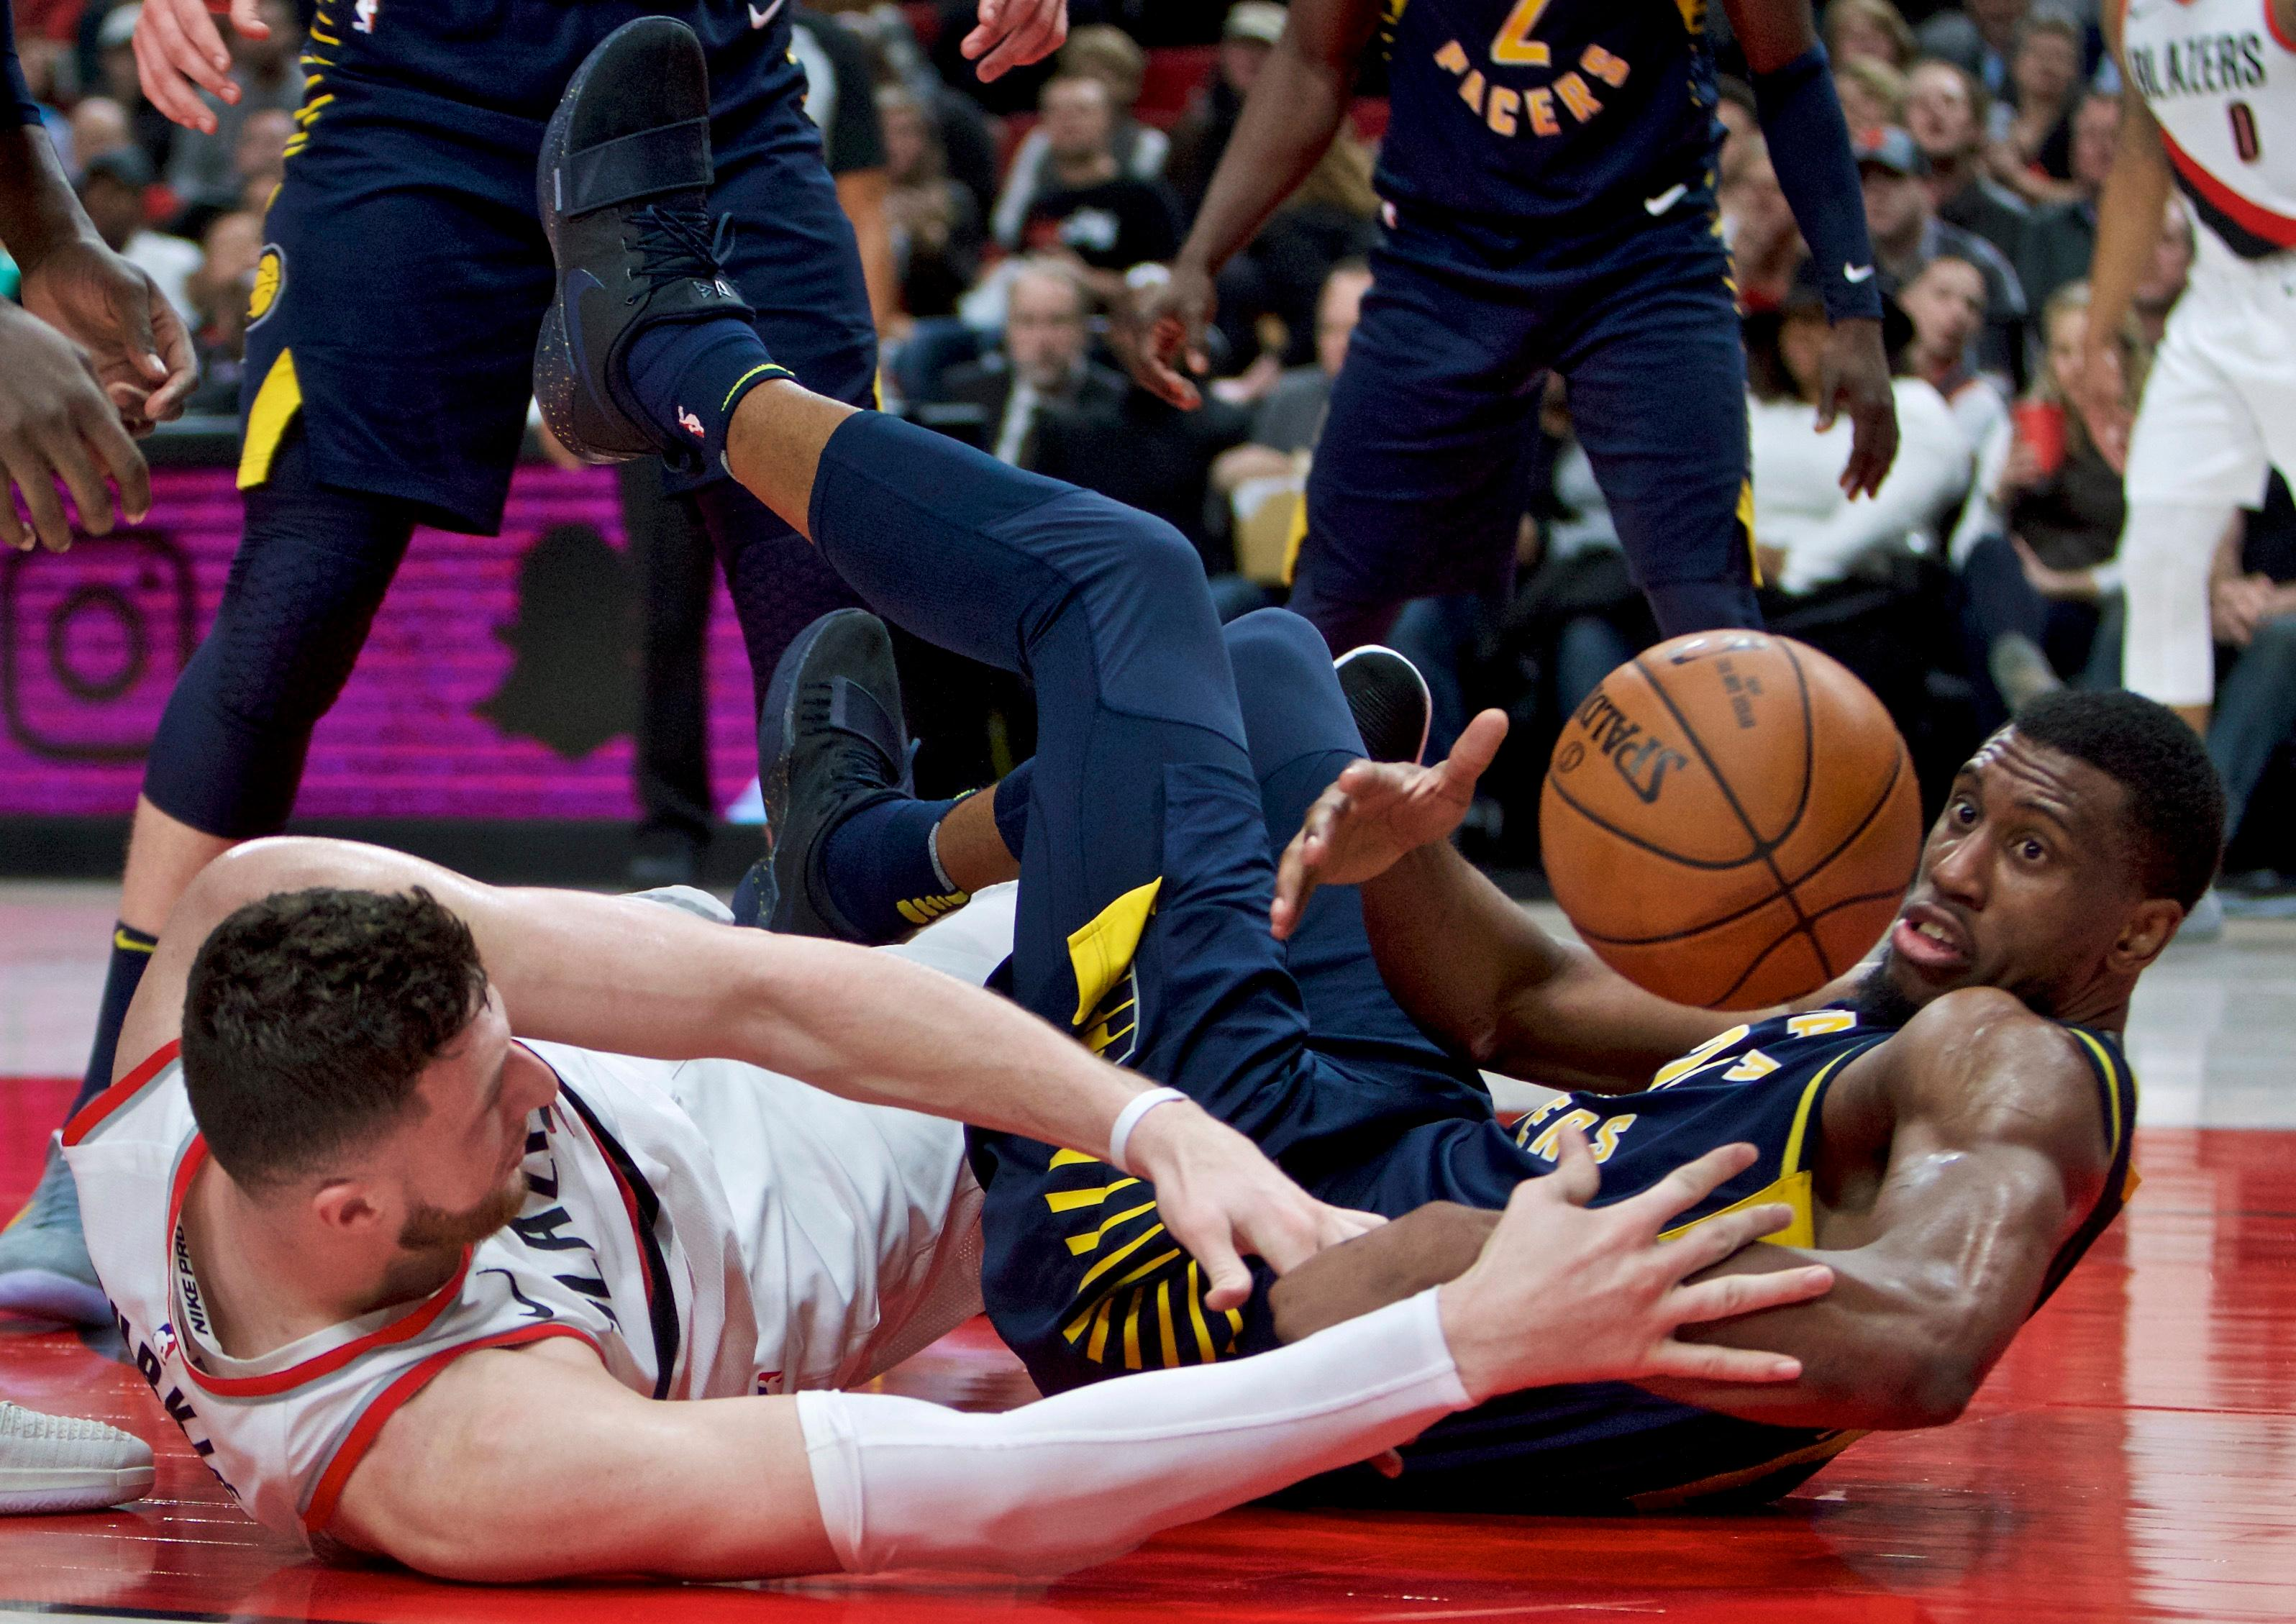 Indiana Pacers forward Thaddeus Young, right, and Portland Trail Blazers center Jusuf Nurkic reach for a loose ball during the second half of an NBA basketball game in Portland, Ore., Thursday, Jan. 18, 2018. (AP Photo/Craig Mitchelldyer)